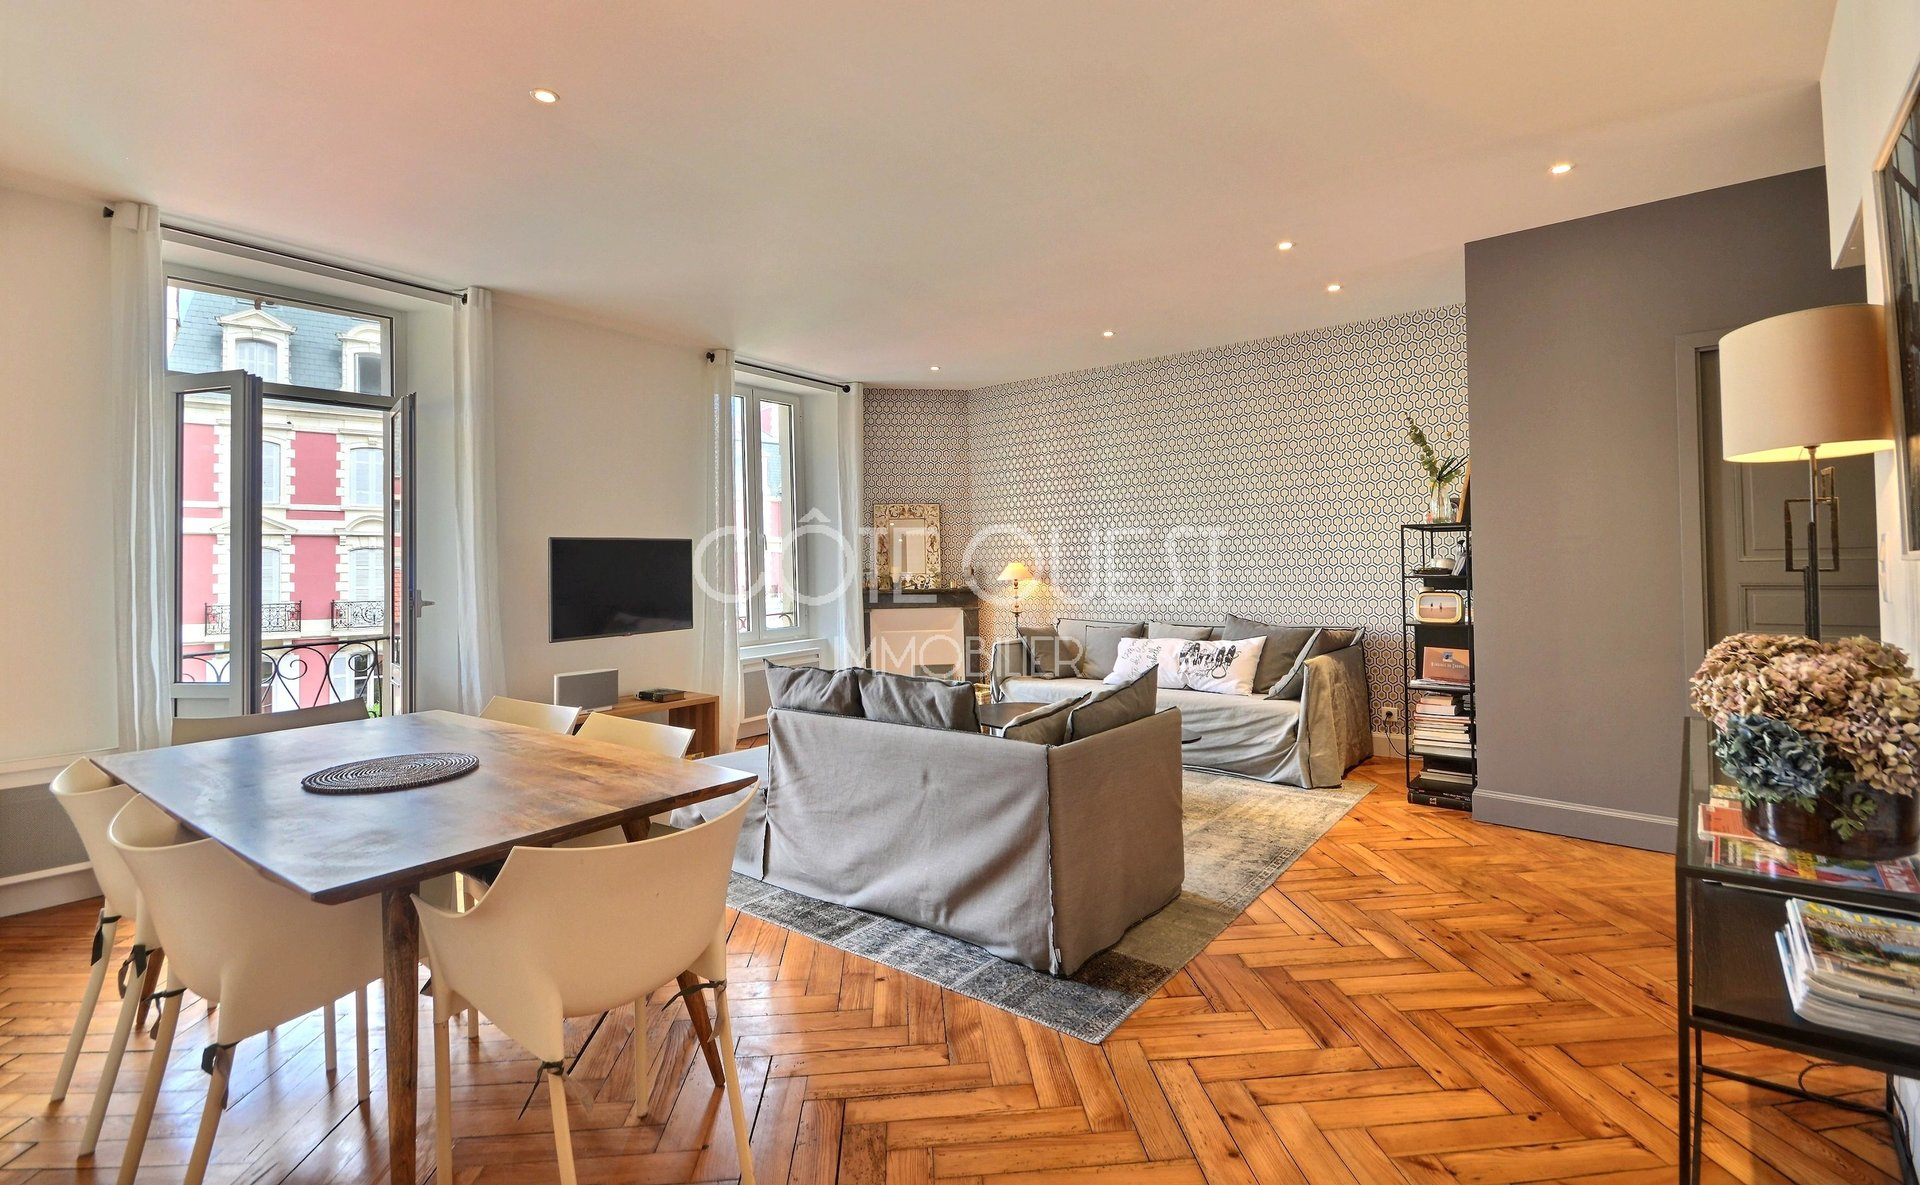 FOR SALE 80 SQM APPARTEMENT 3 ROOMS IMPERIAL DISTRICT BIARRITZ